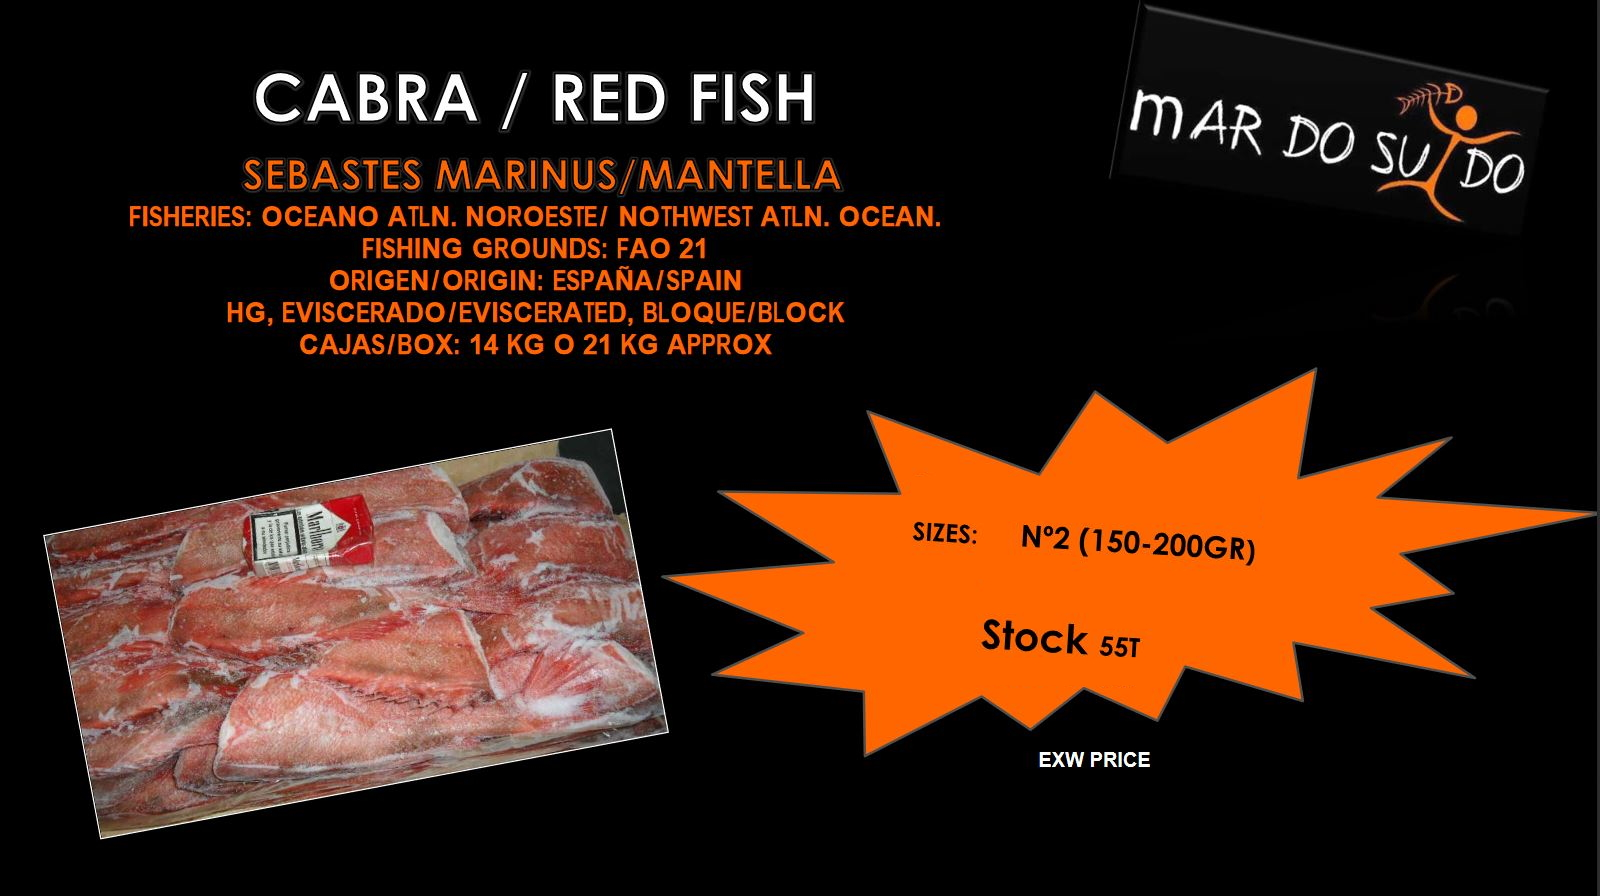 Oferta Destacada de Cabra - Red Fish Special Offer